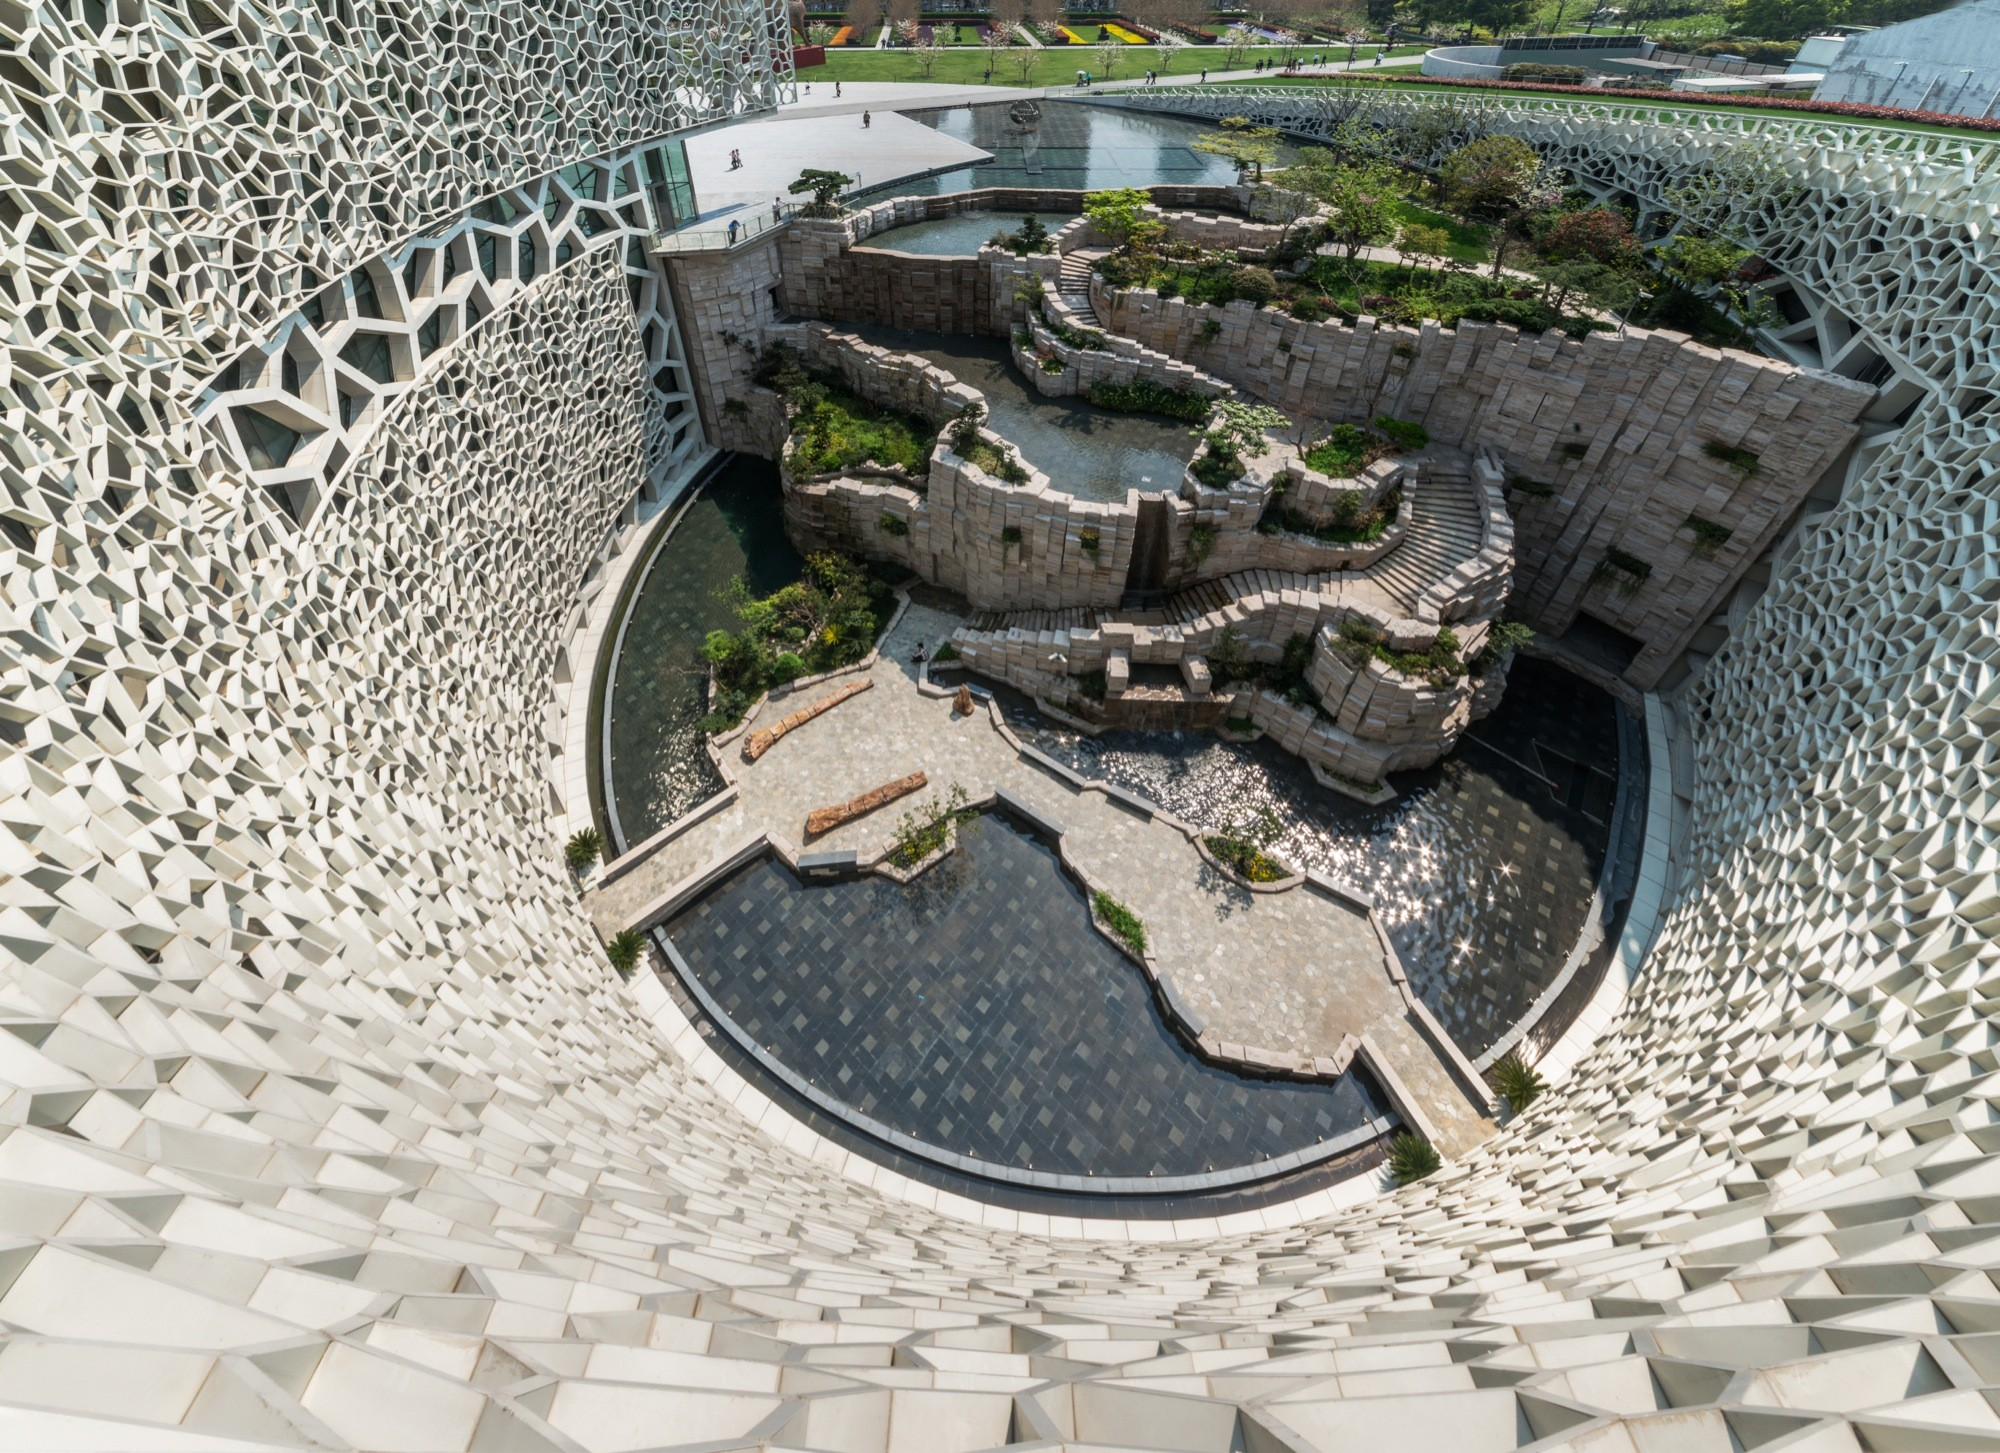 Museo de Historia Natural de Shanghai / Perkins+Will, © James and Connor Steinkamp